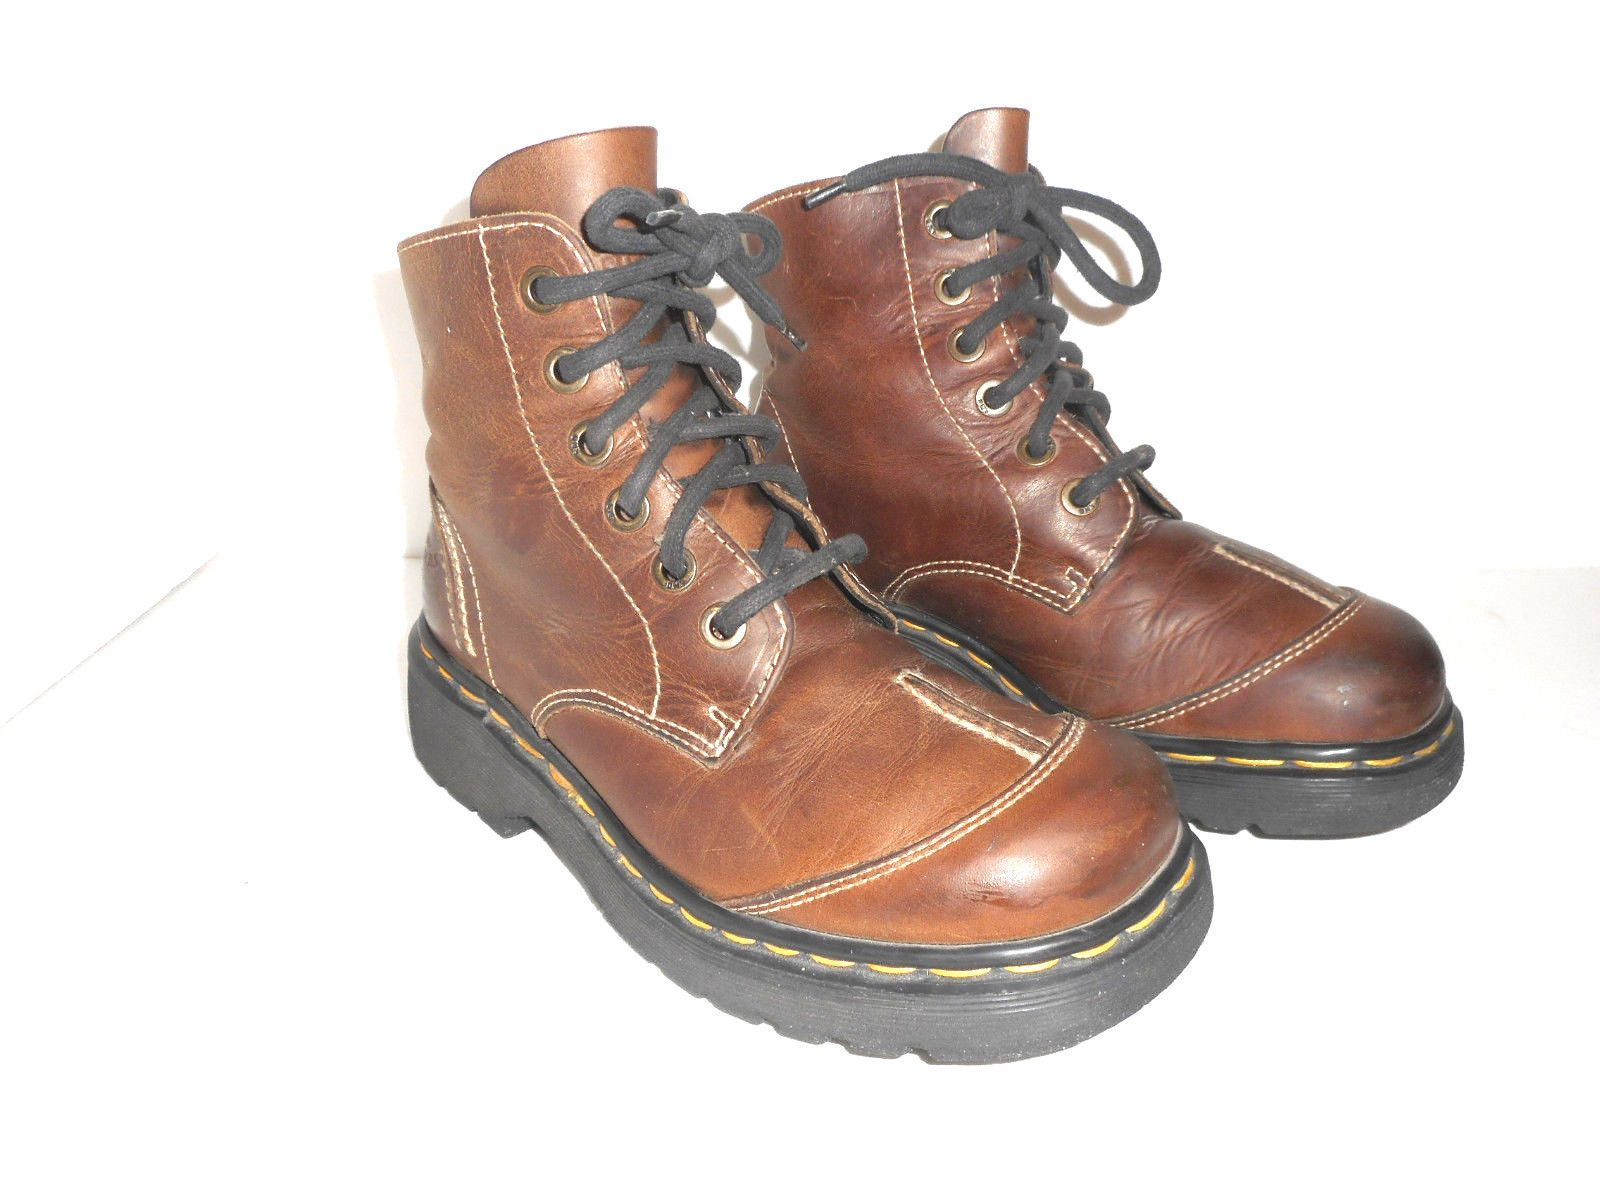 Dr. Martens Size Women's Uk 6 Tan Brown Leather Boots Made In England Us 8